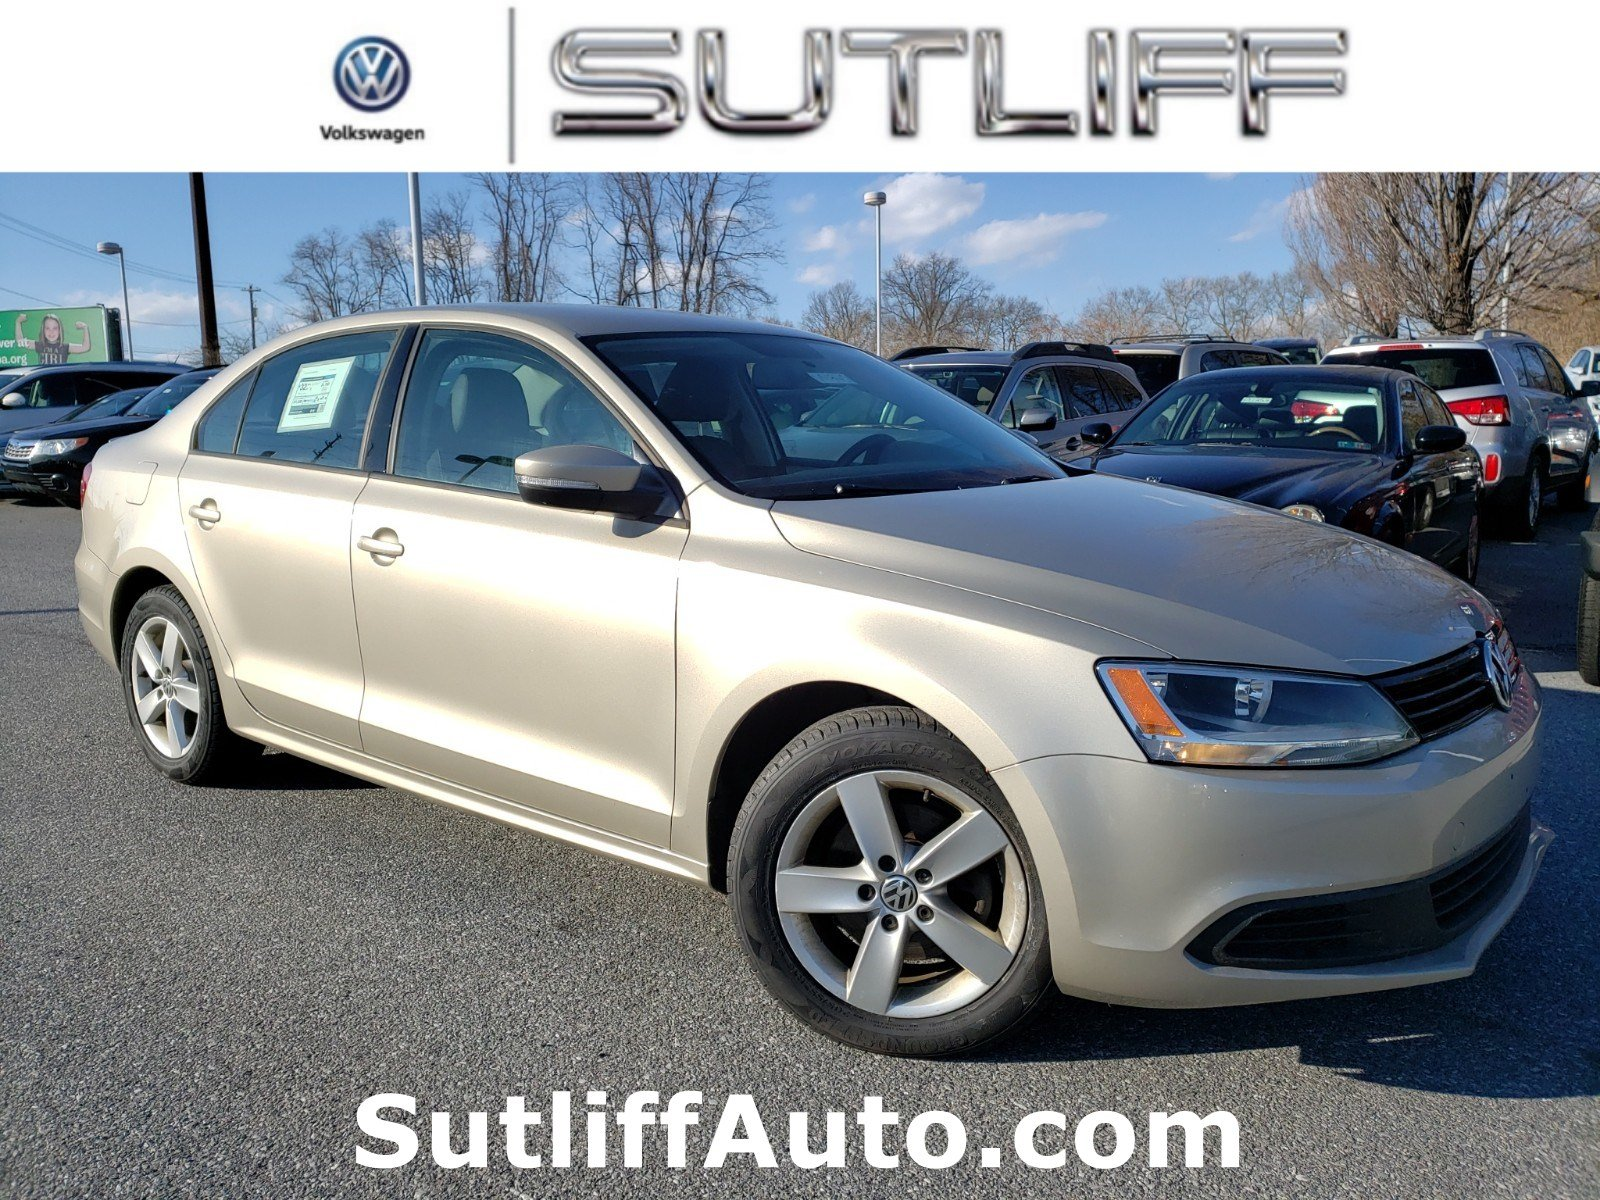 Certified Pre-Owned 2012 Volkswagen Jetta Sedan